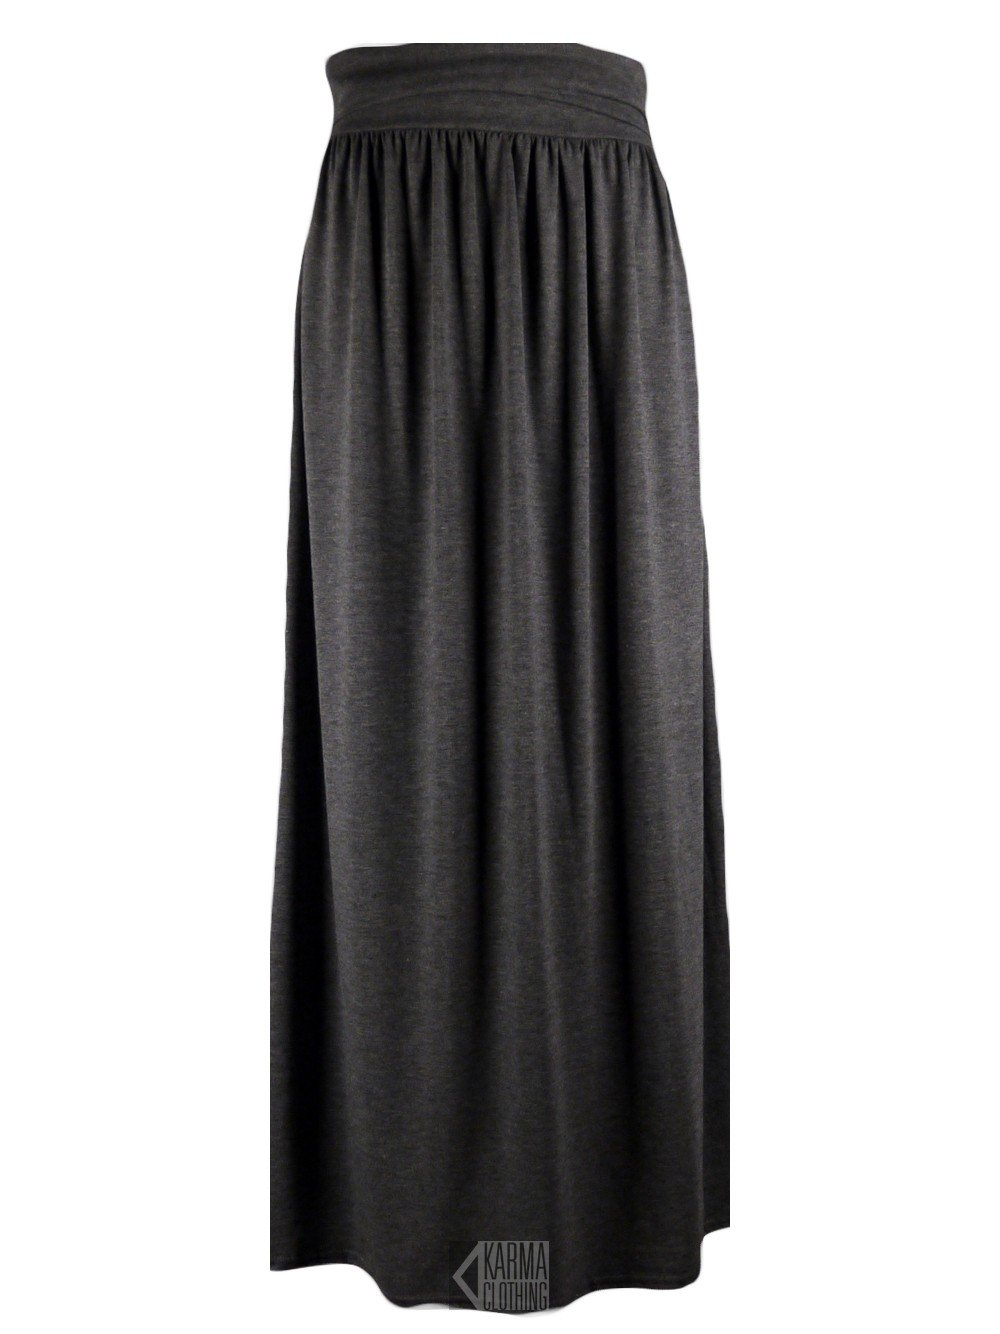 grey jersey maxi skirt 2014 2015 fashion trends 2016 2017